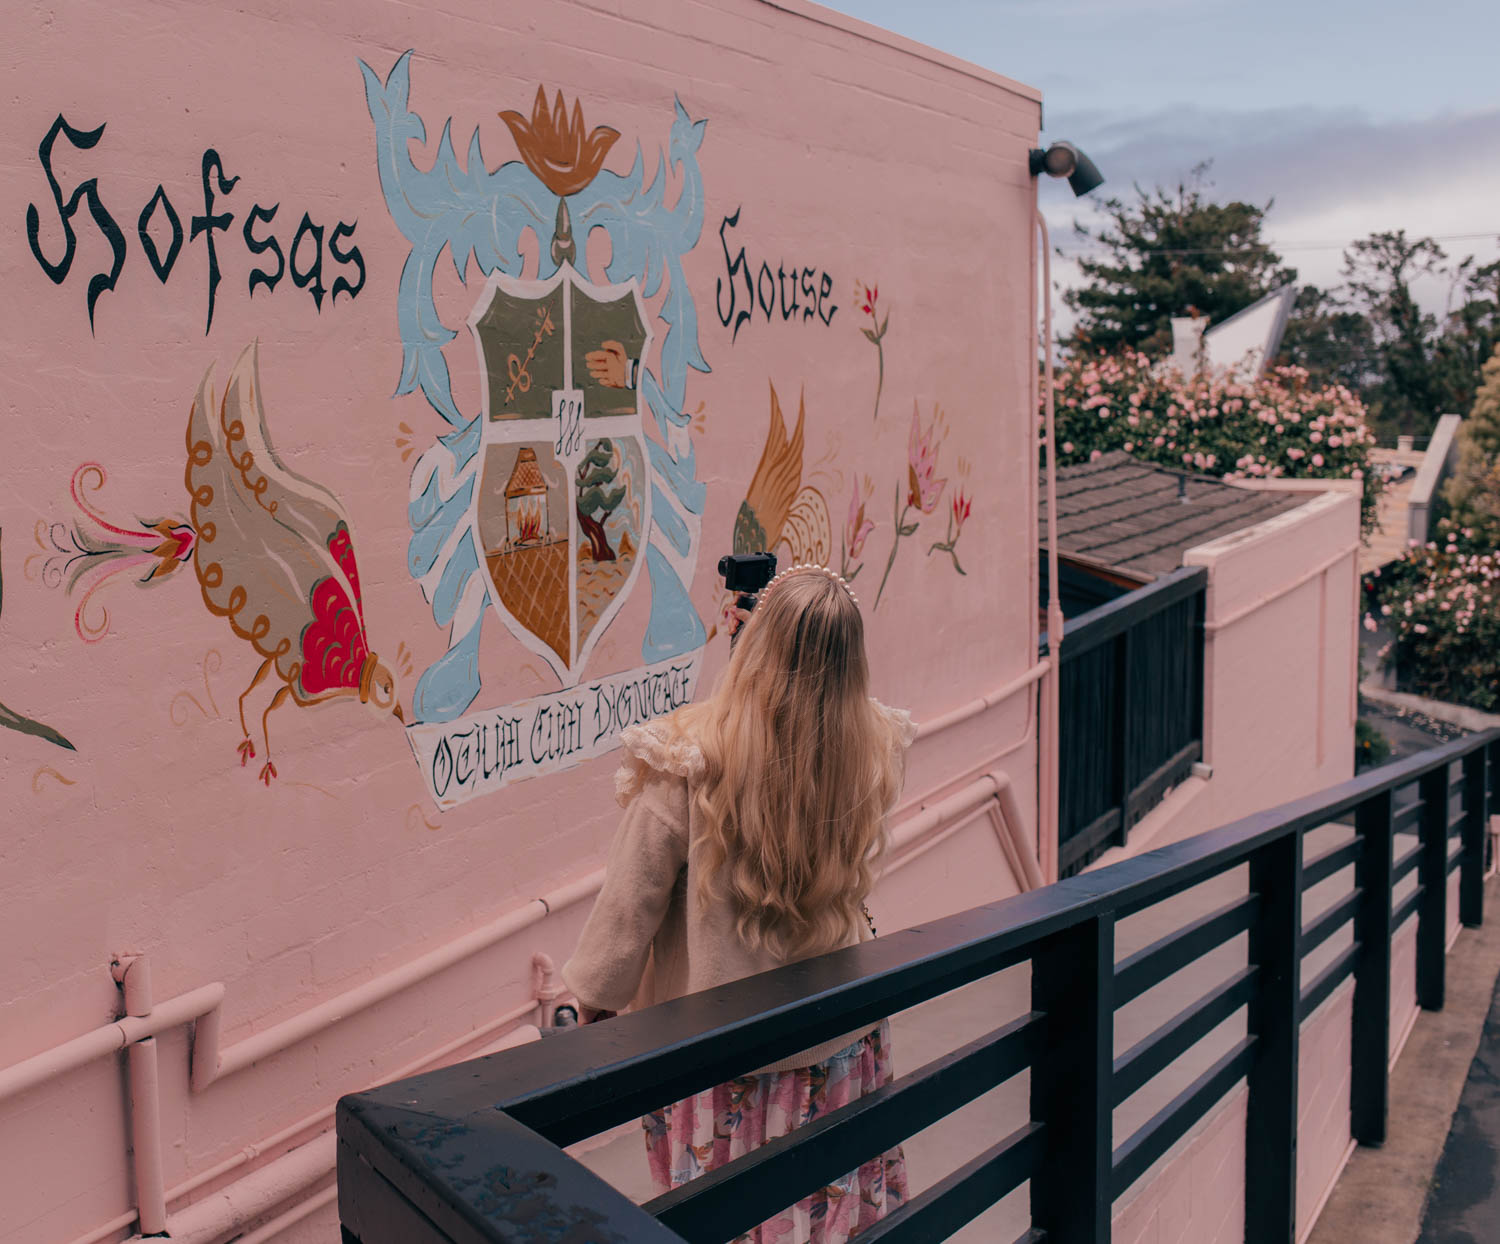 Feminine fashion blogger Elizabeth Hugen of Lizzie in Lace shares where to stay in Carmel by-the-sea along with a tour of the gorgeous property of Hofsas House Hotel, the prettiest pink hotel